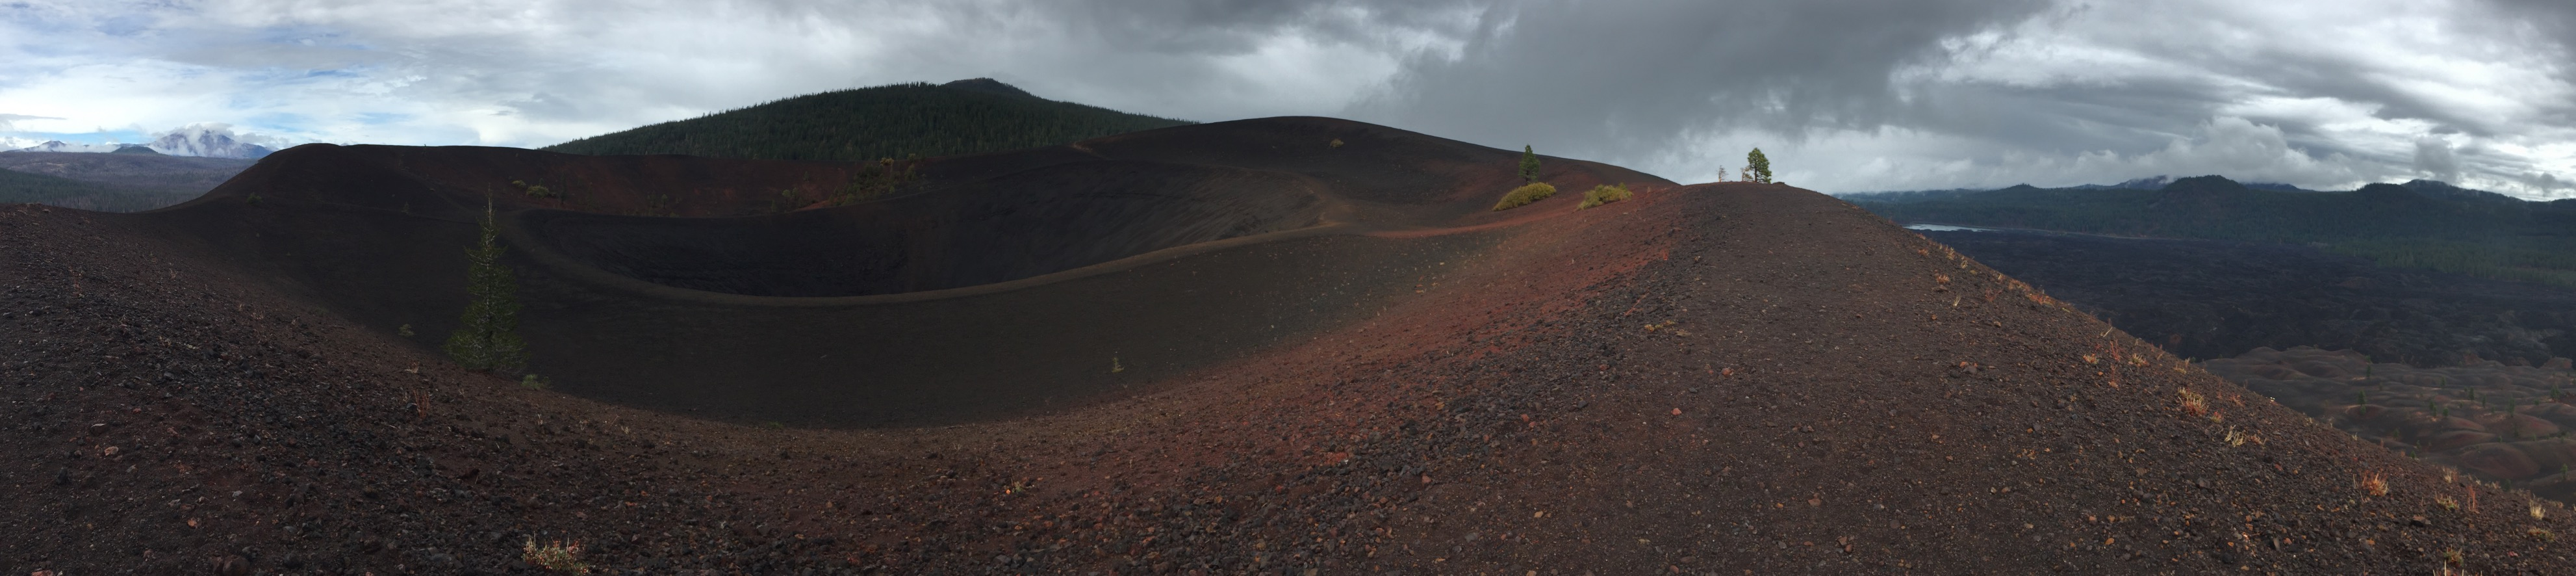 A panorama view of the caldera